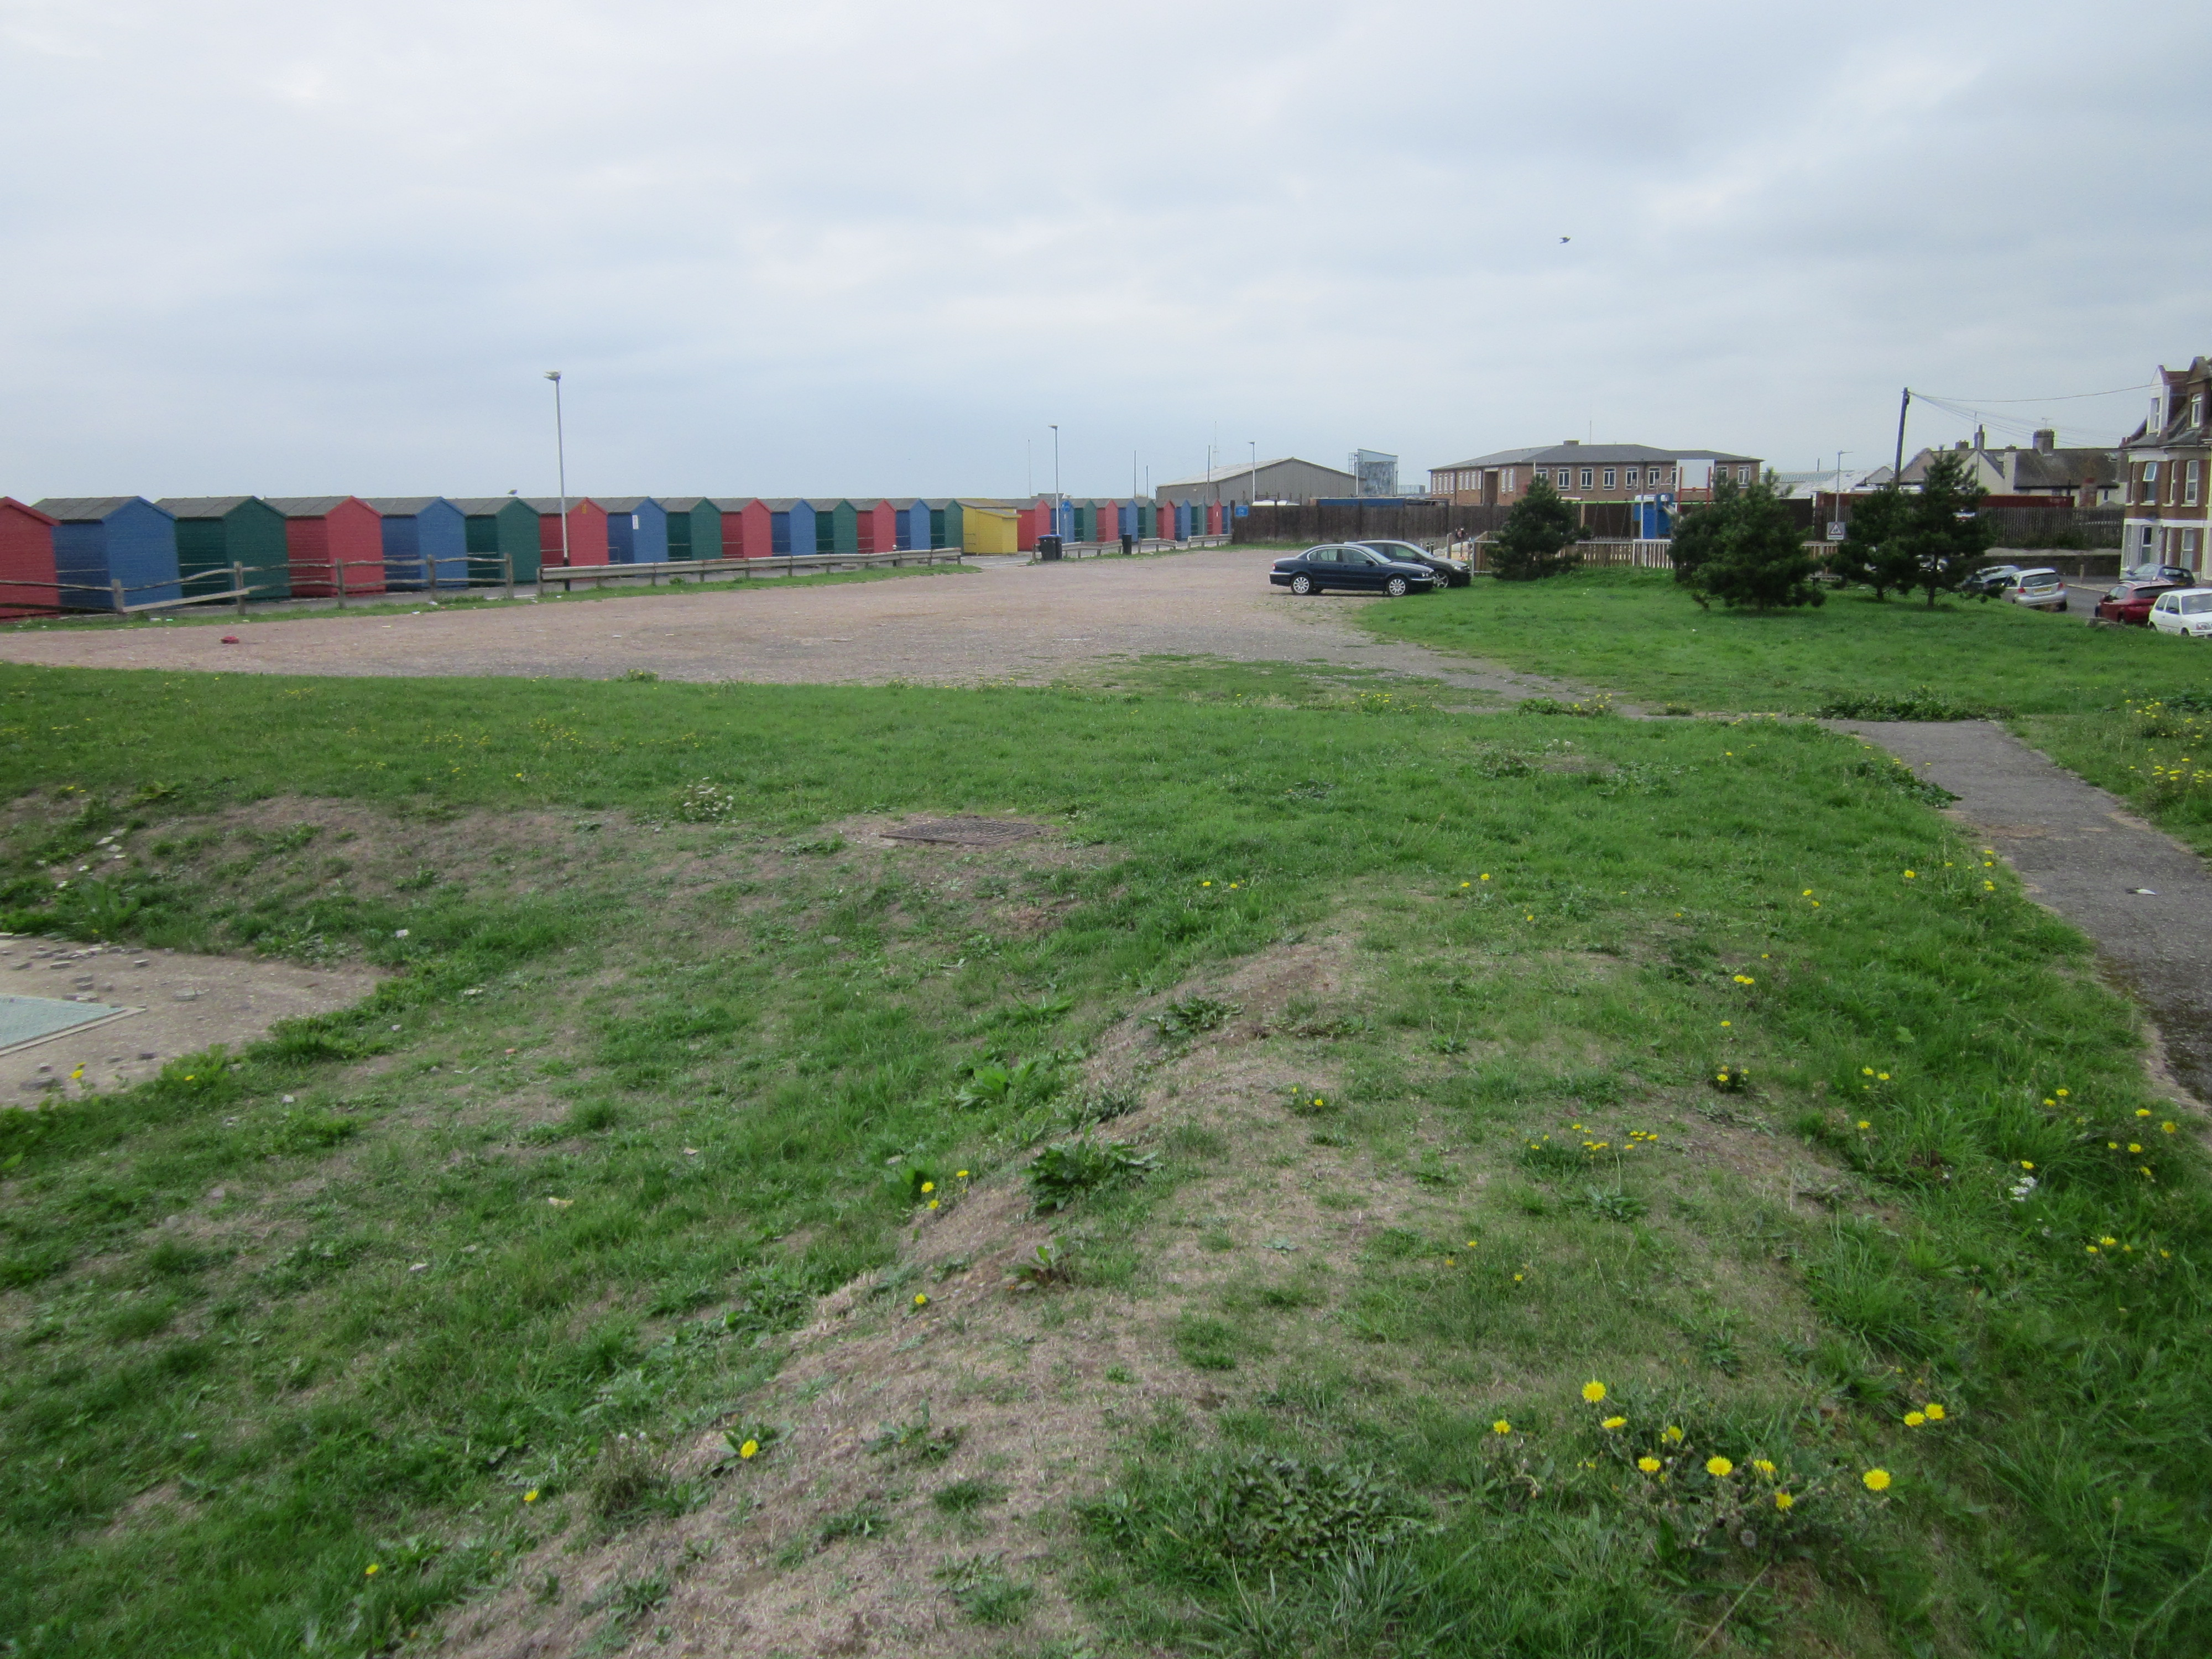 Council finds developer to help regenerate old bathing pool site